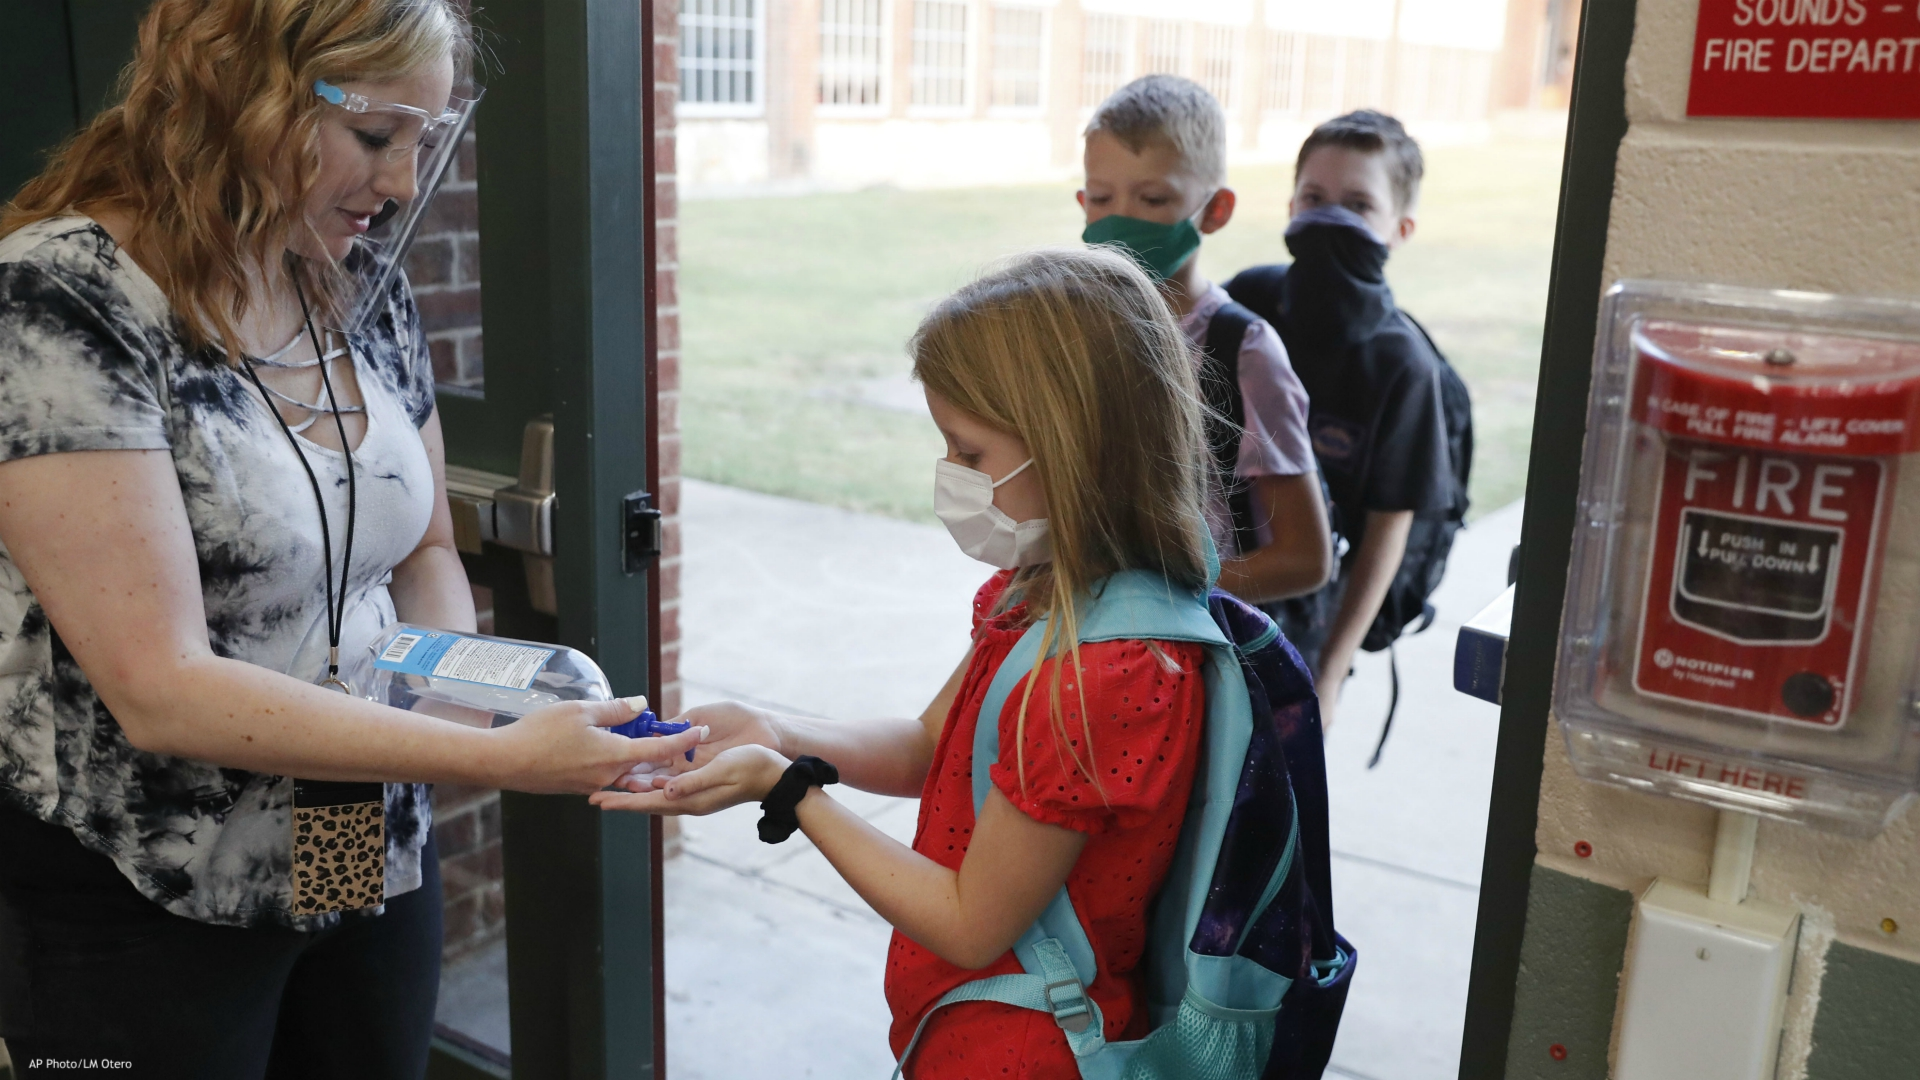 In this Aug. 5, 2020, file photo, wearing masks to prevent the spread of COVID19, elementary school students use hand sanitizer before entering school for classes in Godley, Texas. As schools reopen around the country, their ability to quickly identify and contain coronavirus outbreaks before they get out of hand is about to be put to the test. (AP Photo/LM Otero, File)